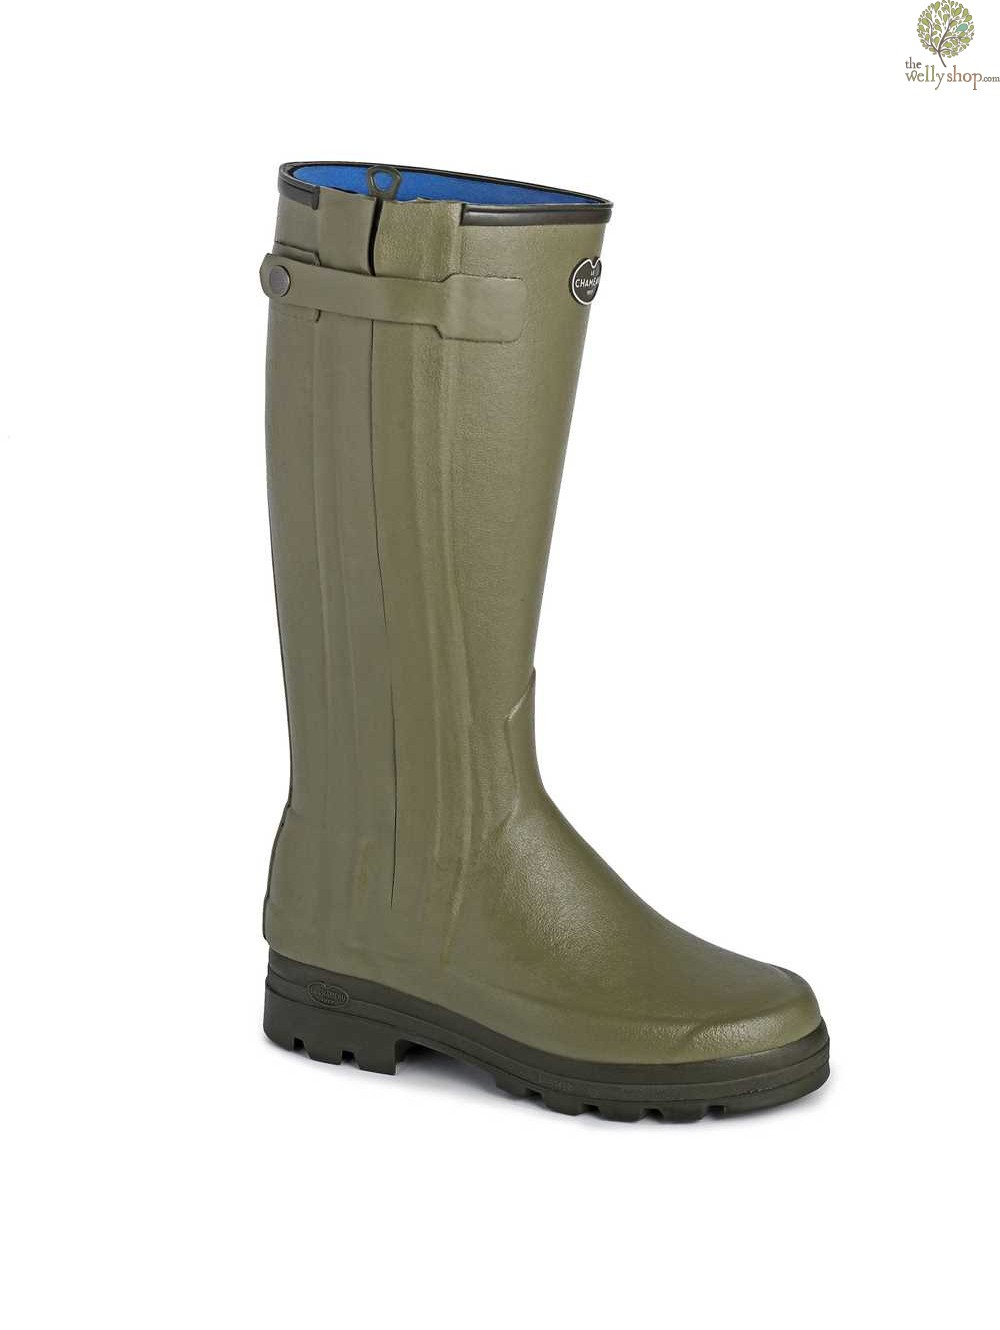 Le Chameau Chasseur Neo Neoprene Lined Boots Full Length